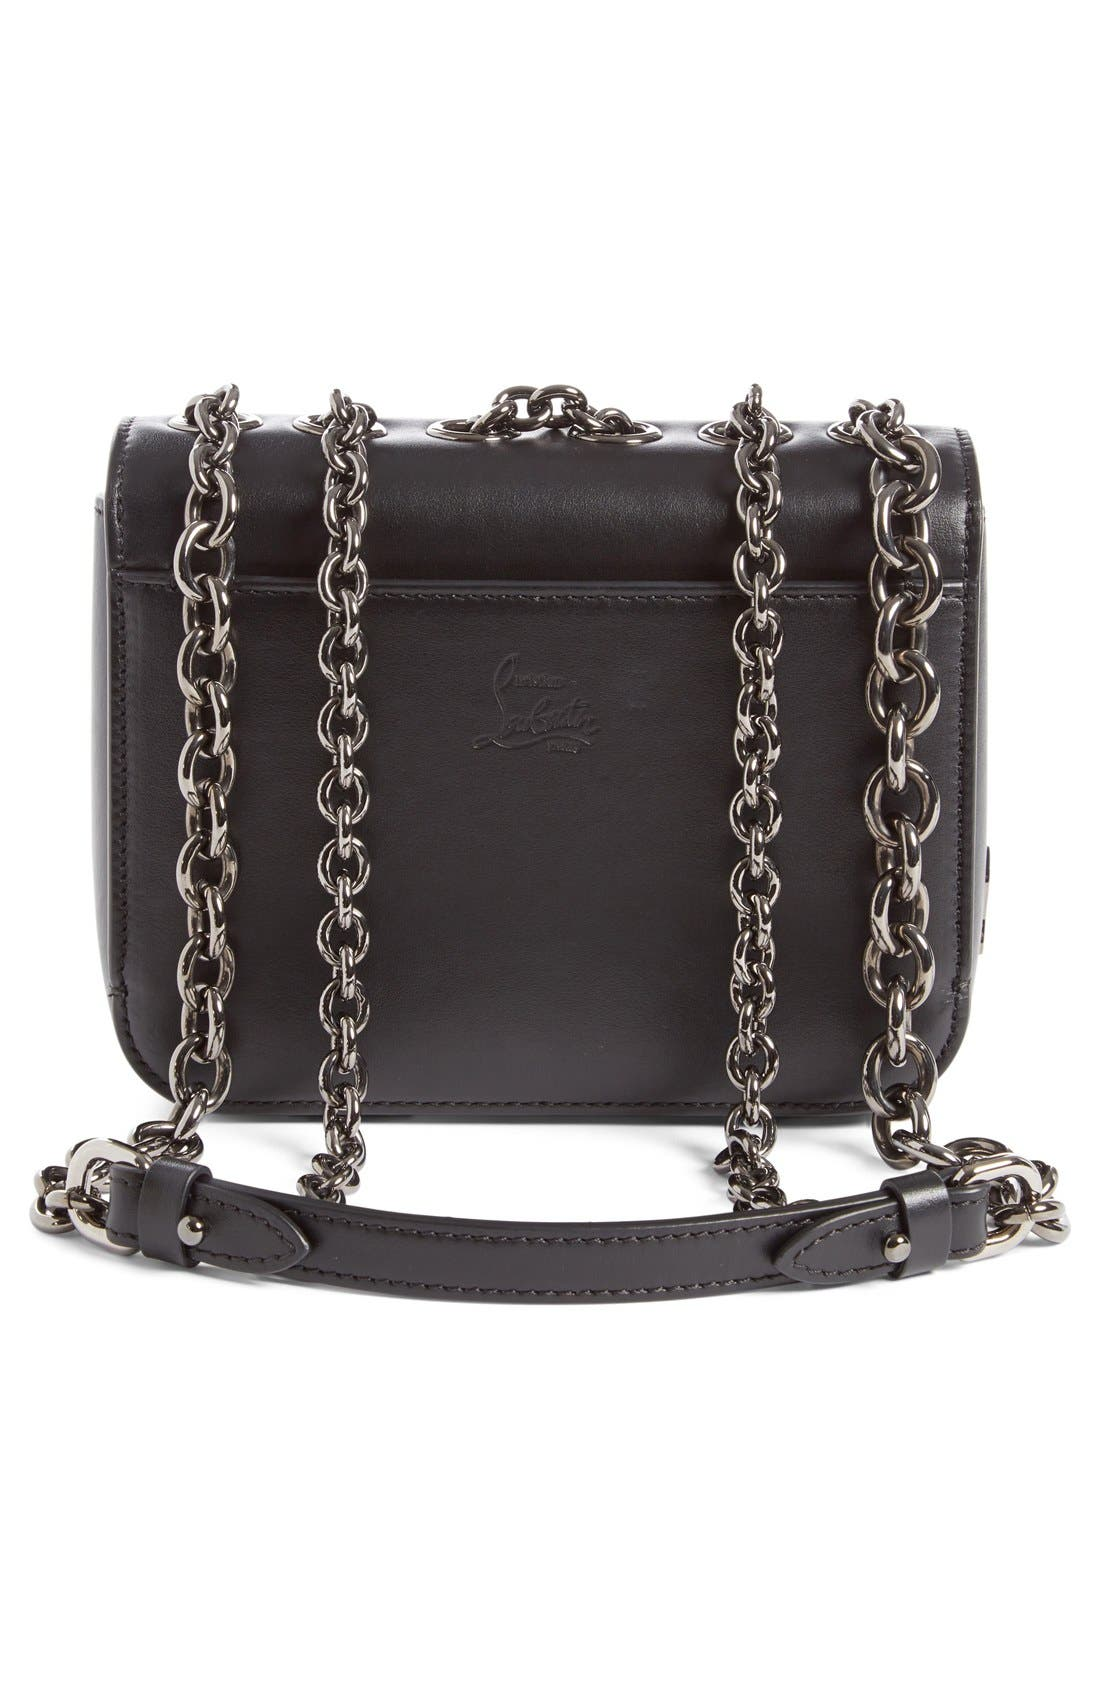 Alternate Image 3  - Christian Louboutin 'Mini Sweet Charity' Spiked Calfskin Shoulder/Crossbody Bag